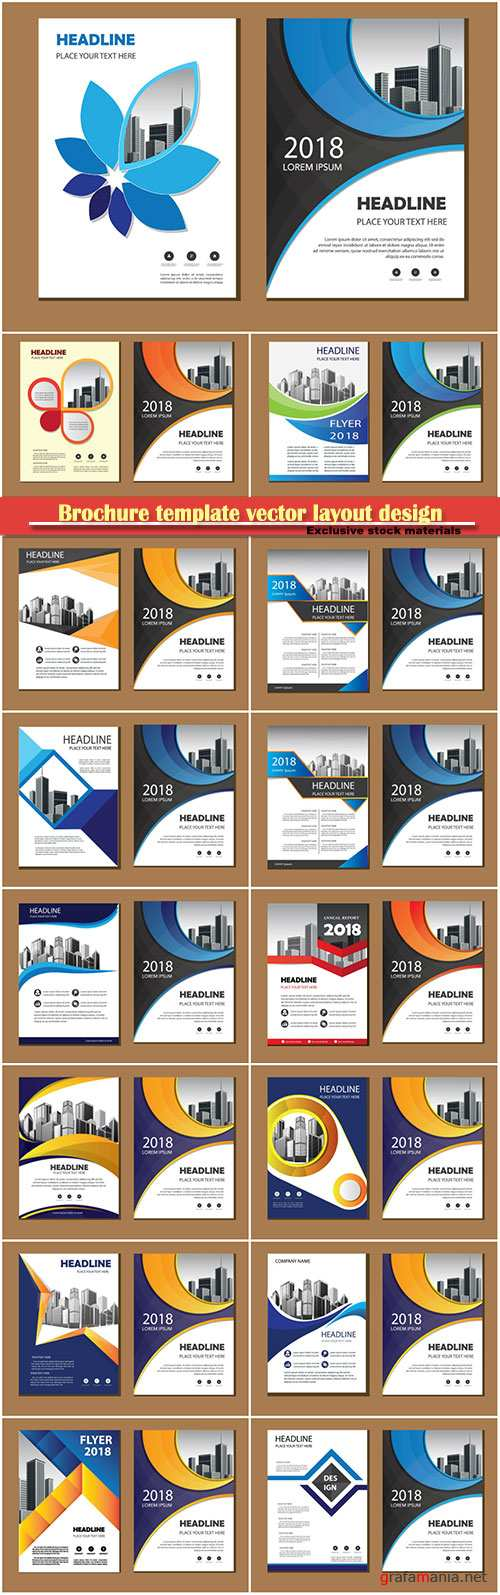 Brochure template vector layout design, corporate business annual report, magazine, flyer mockup # 174